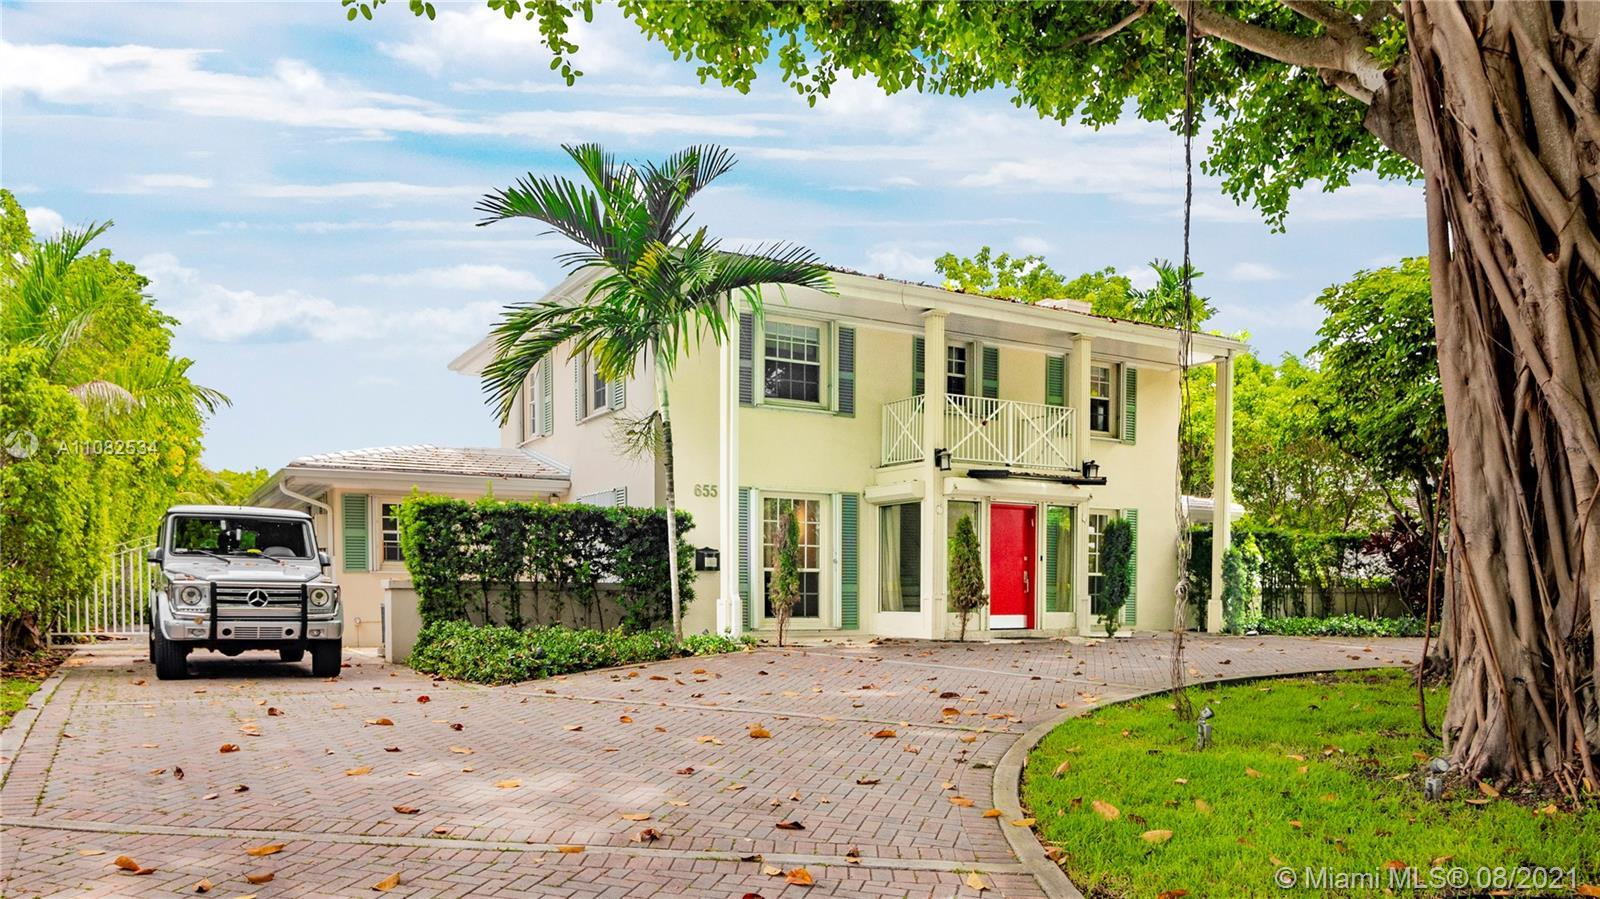 Welcome to 655 Buttonwood Lane, a gorgeous 13,590 SF estate located on the north side of gated Bay P